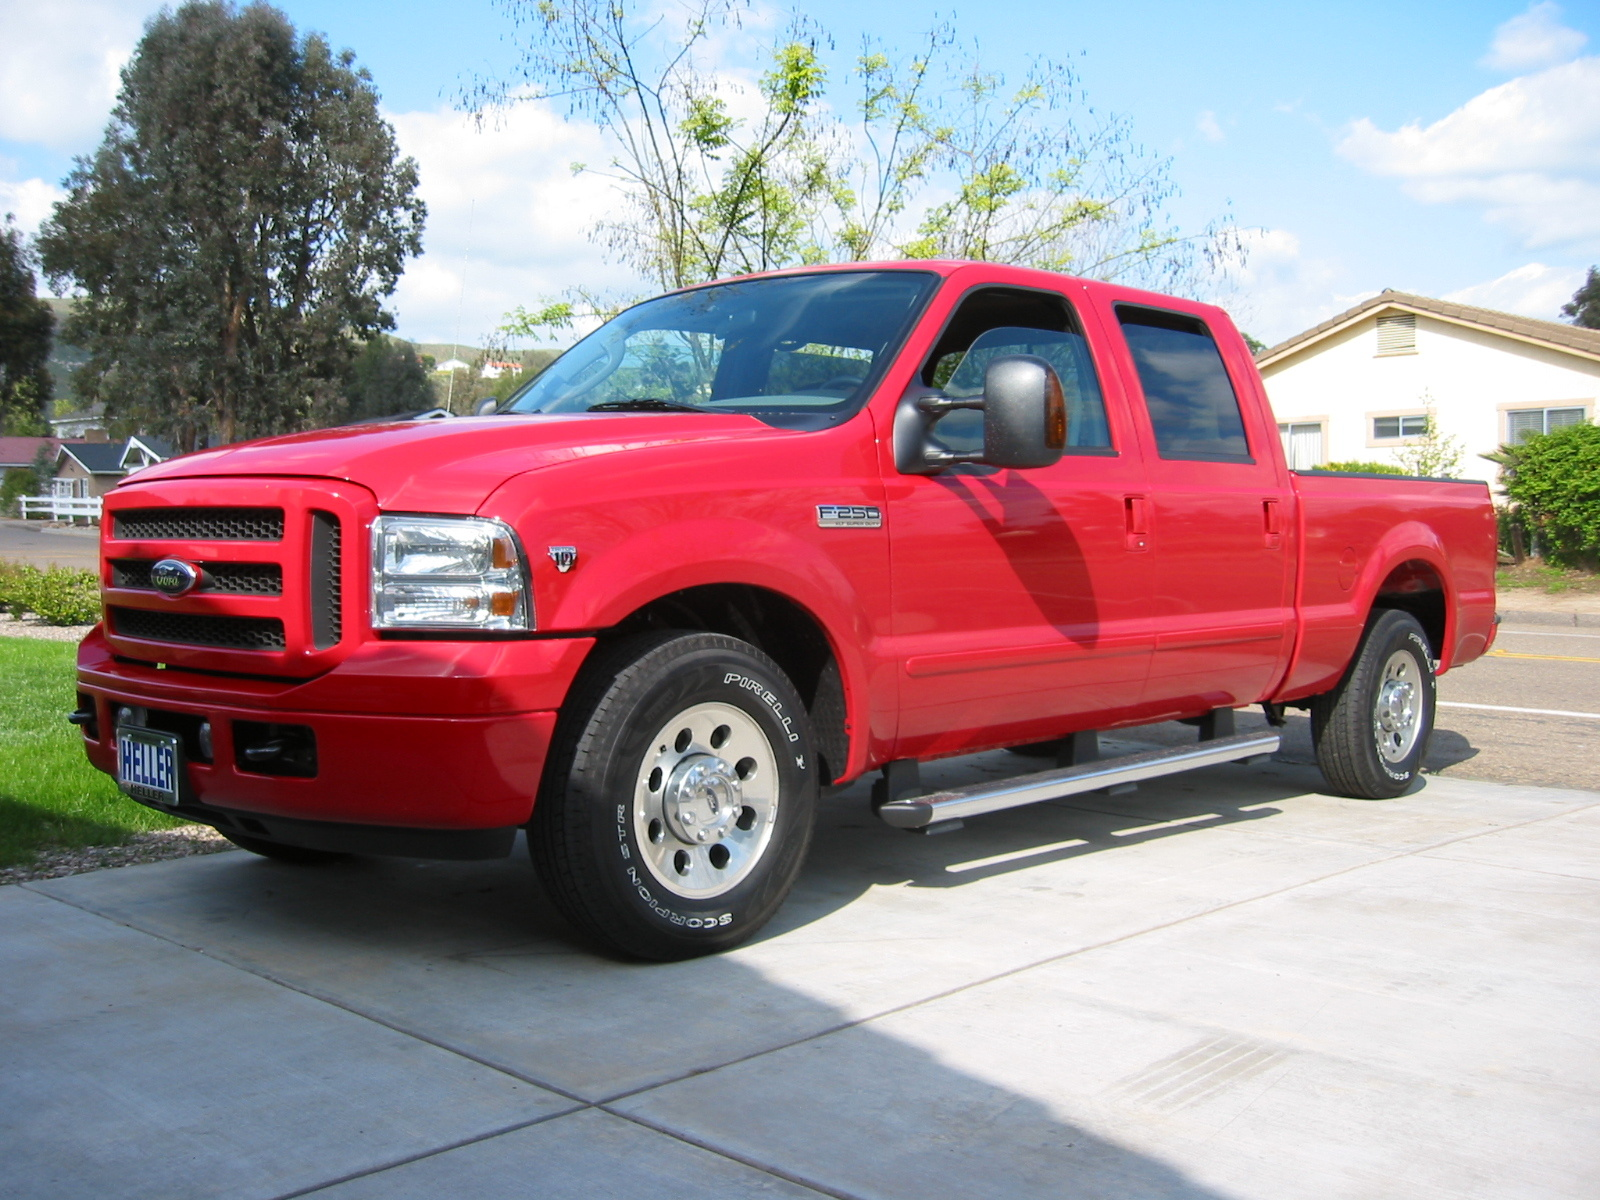 Truck Towing Manual 2005 Ford Factory Car